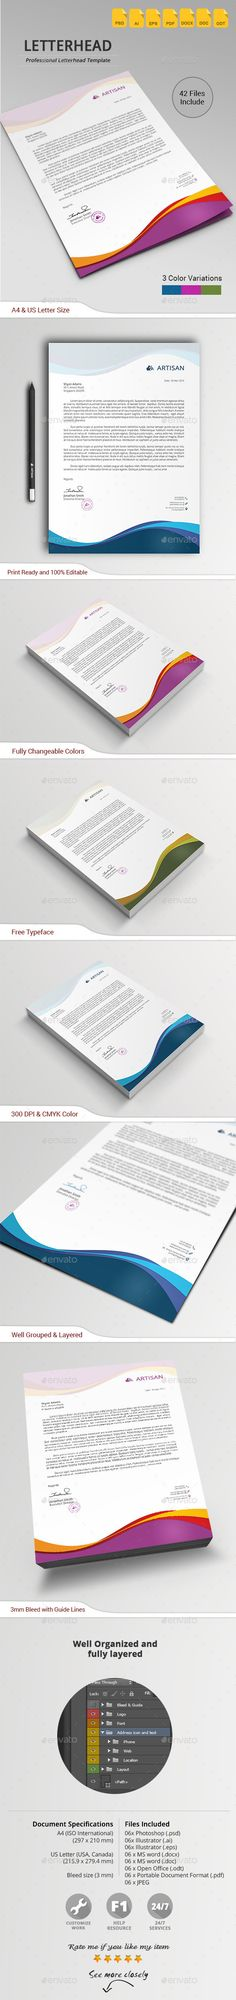 Letterhead in Wave Style (JPG Image, Vector EPS, AI Illustrator, CS3, 8.27x11.69, a4, blue, brand, branding, business, card, clean, corporate identity, corporate letterhead, creative, design, docx, elegant, folder, green, identity, letter, letterhead template, logo, modern, orange, paper, pink, presentation, print ready, professional, stationery, template, wave style, white)